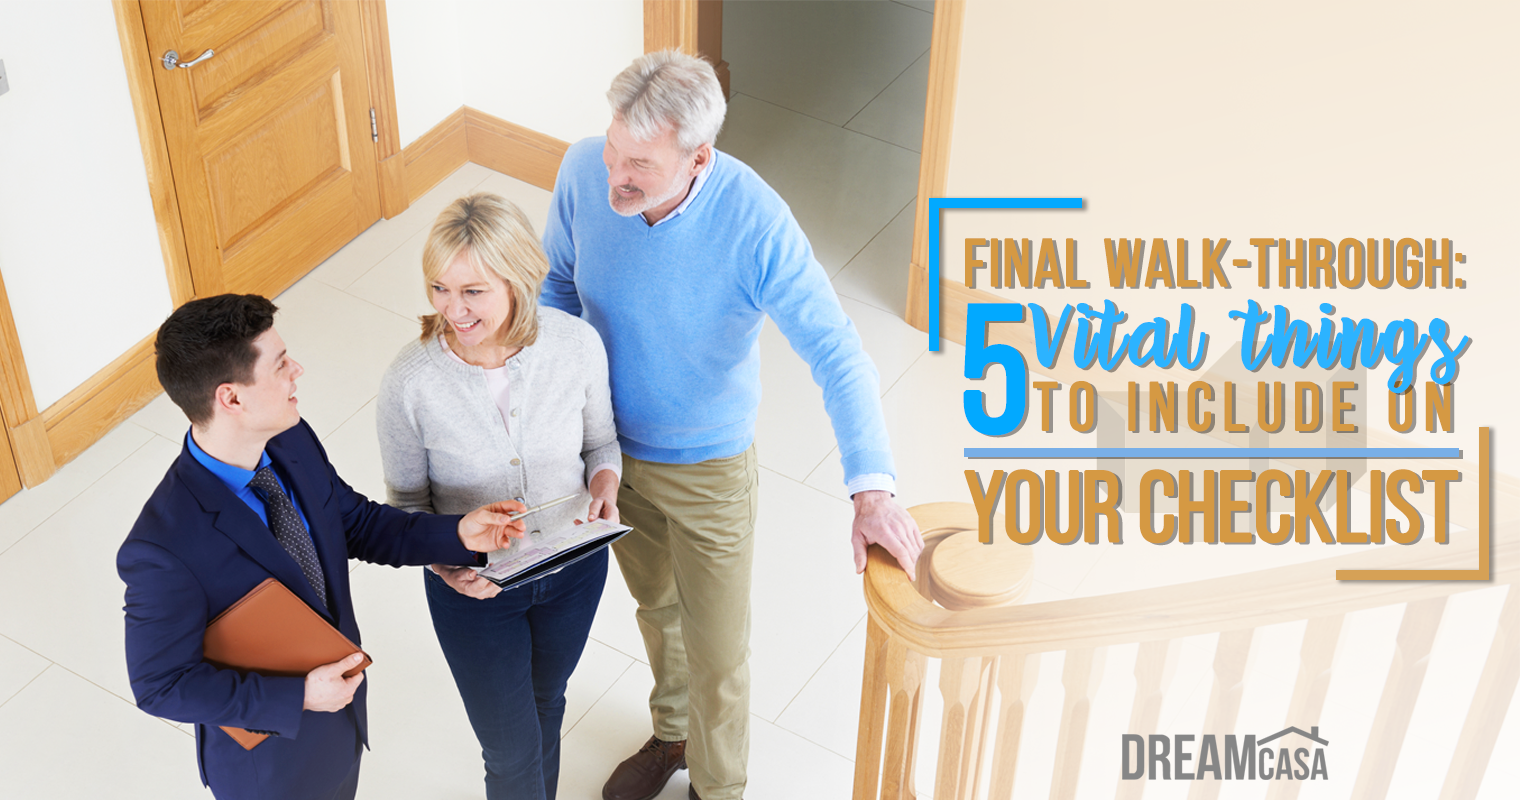 Final Walk-Through: 5 Vital Things To Include On Your Checklist